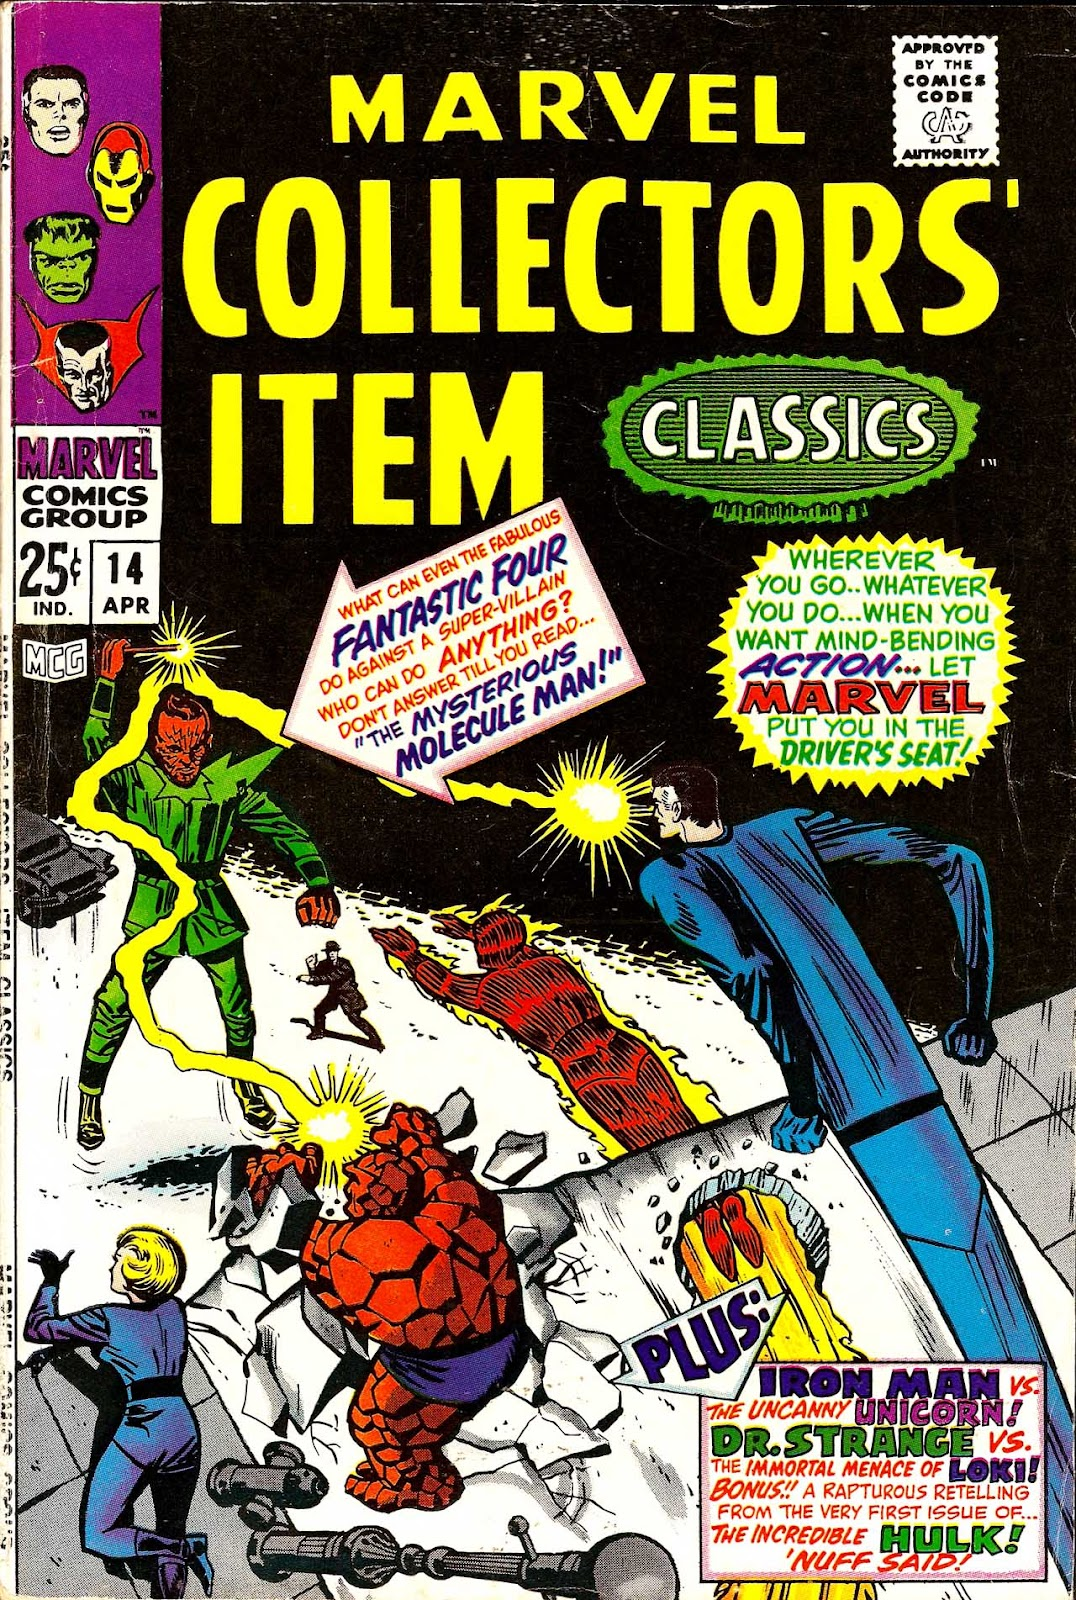 Marvel Collectors Item Classics 14 Page 1